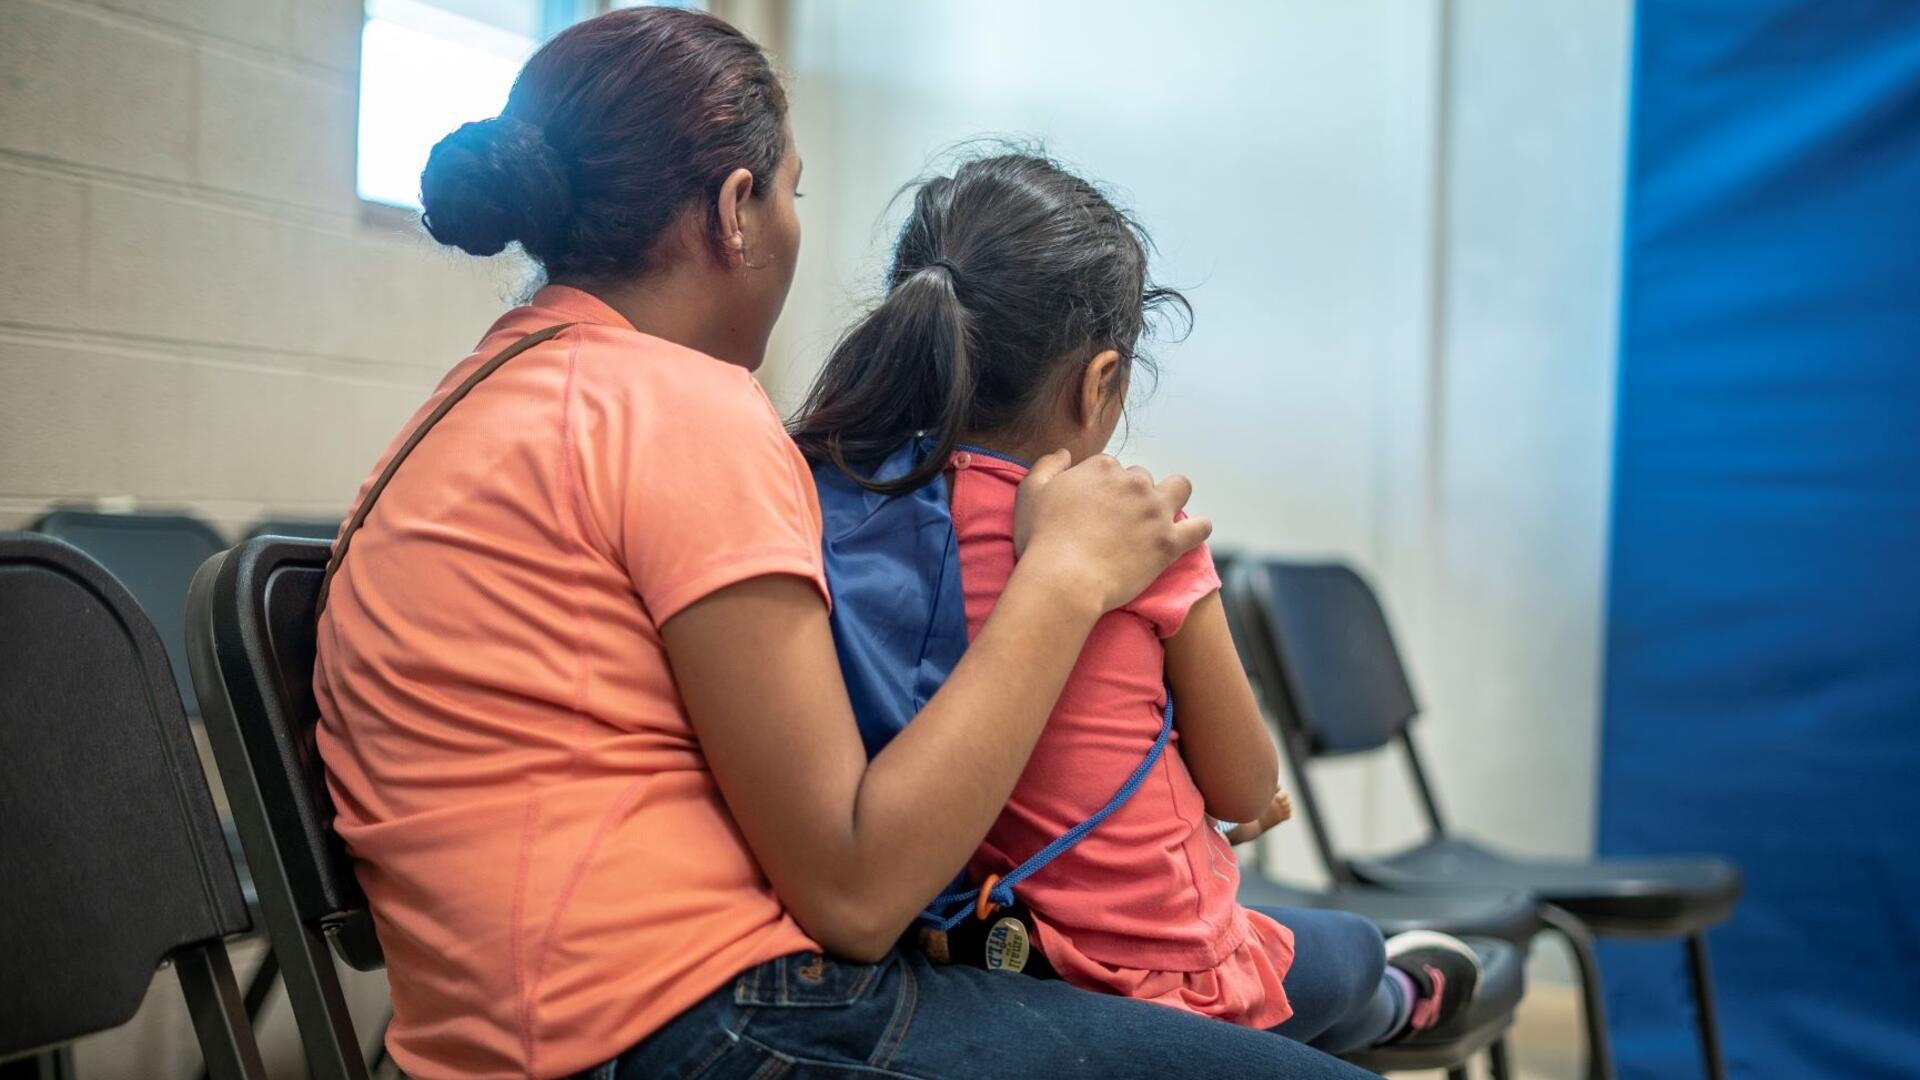 Emilia, 21, holds her 4-year-old daughter at the shelter in Phoenix where the IRC welcomed them after they were detained while fleeing to the U.S. from Honduras.